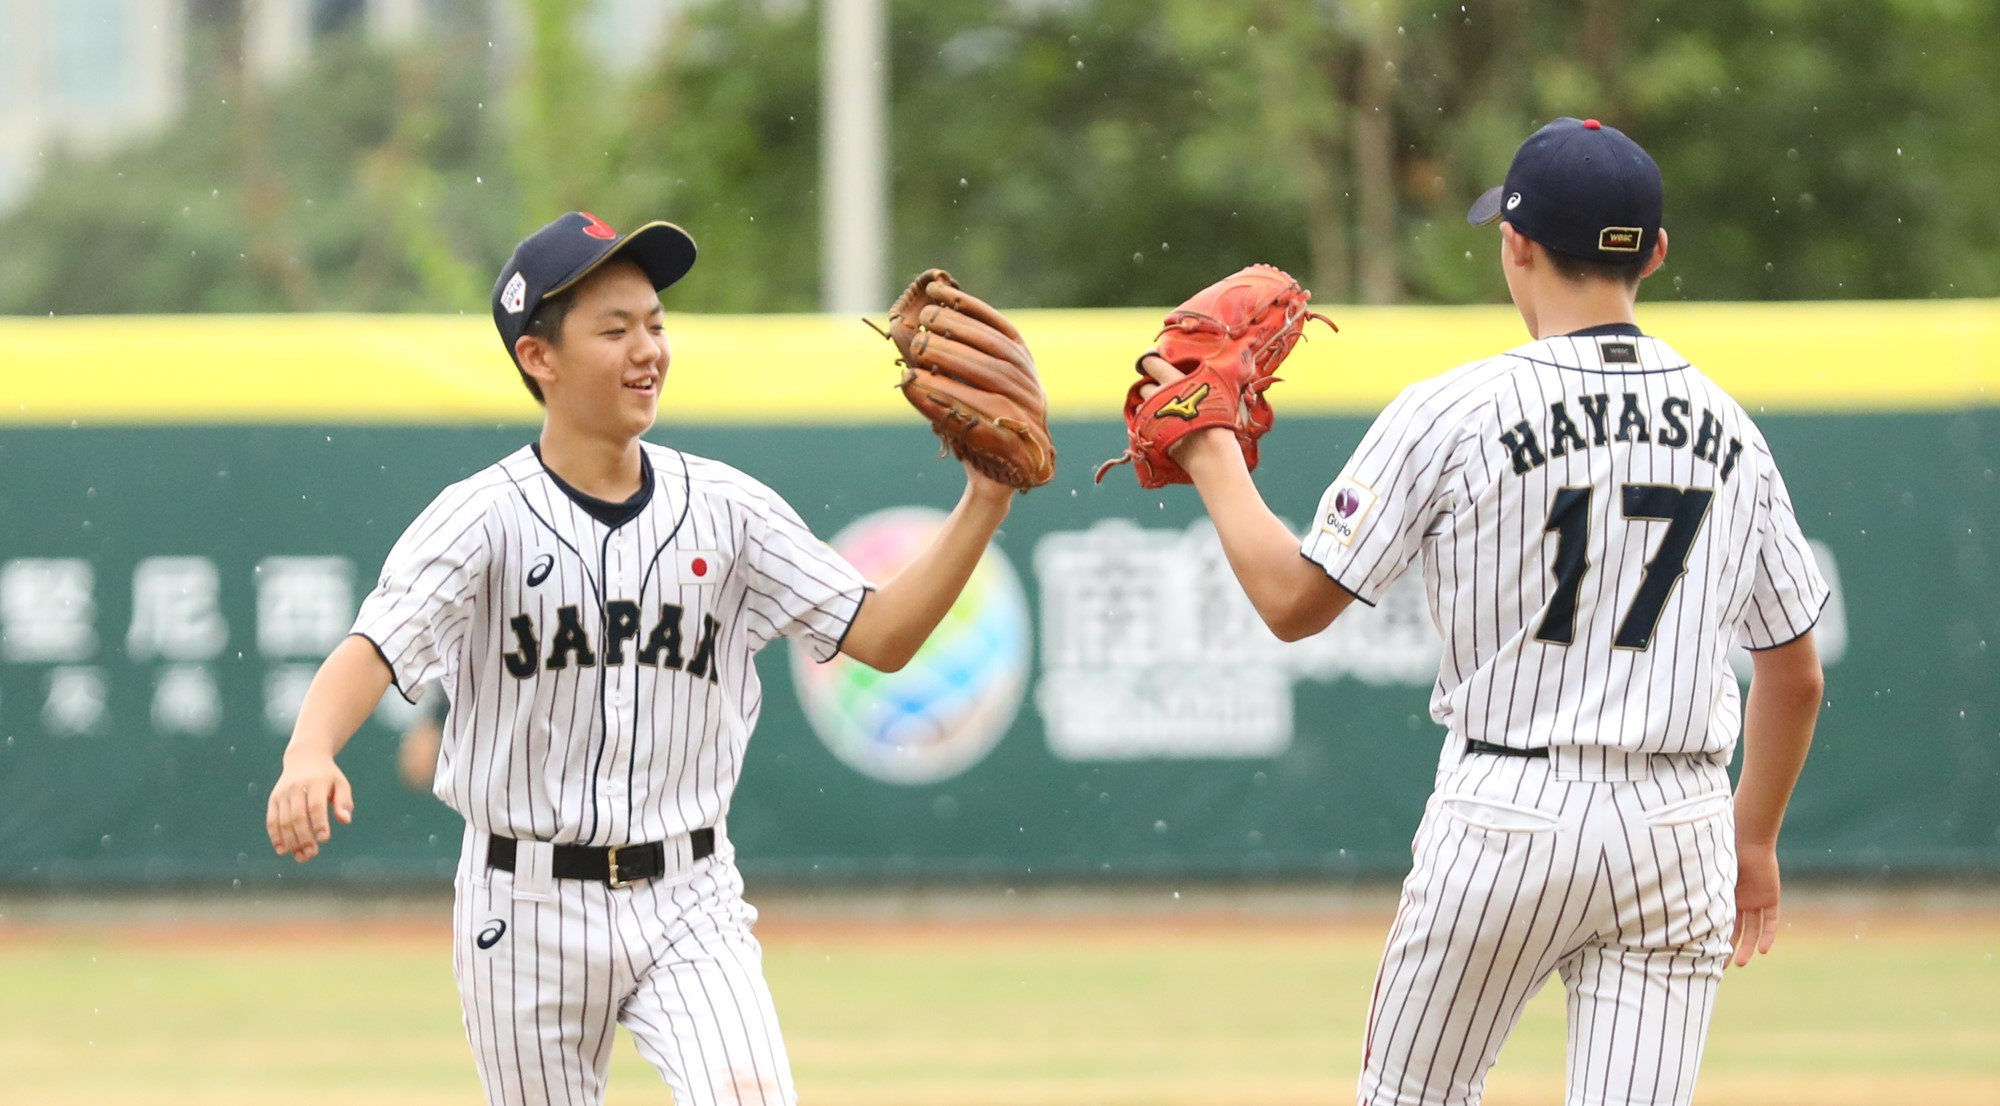 A great play by center fielder Rui Akazawa helped Japan's pitchers